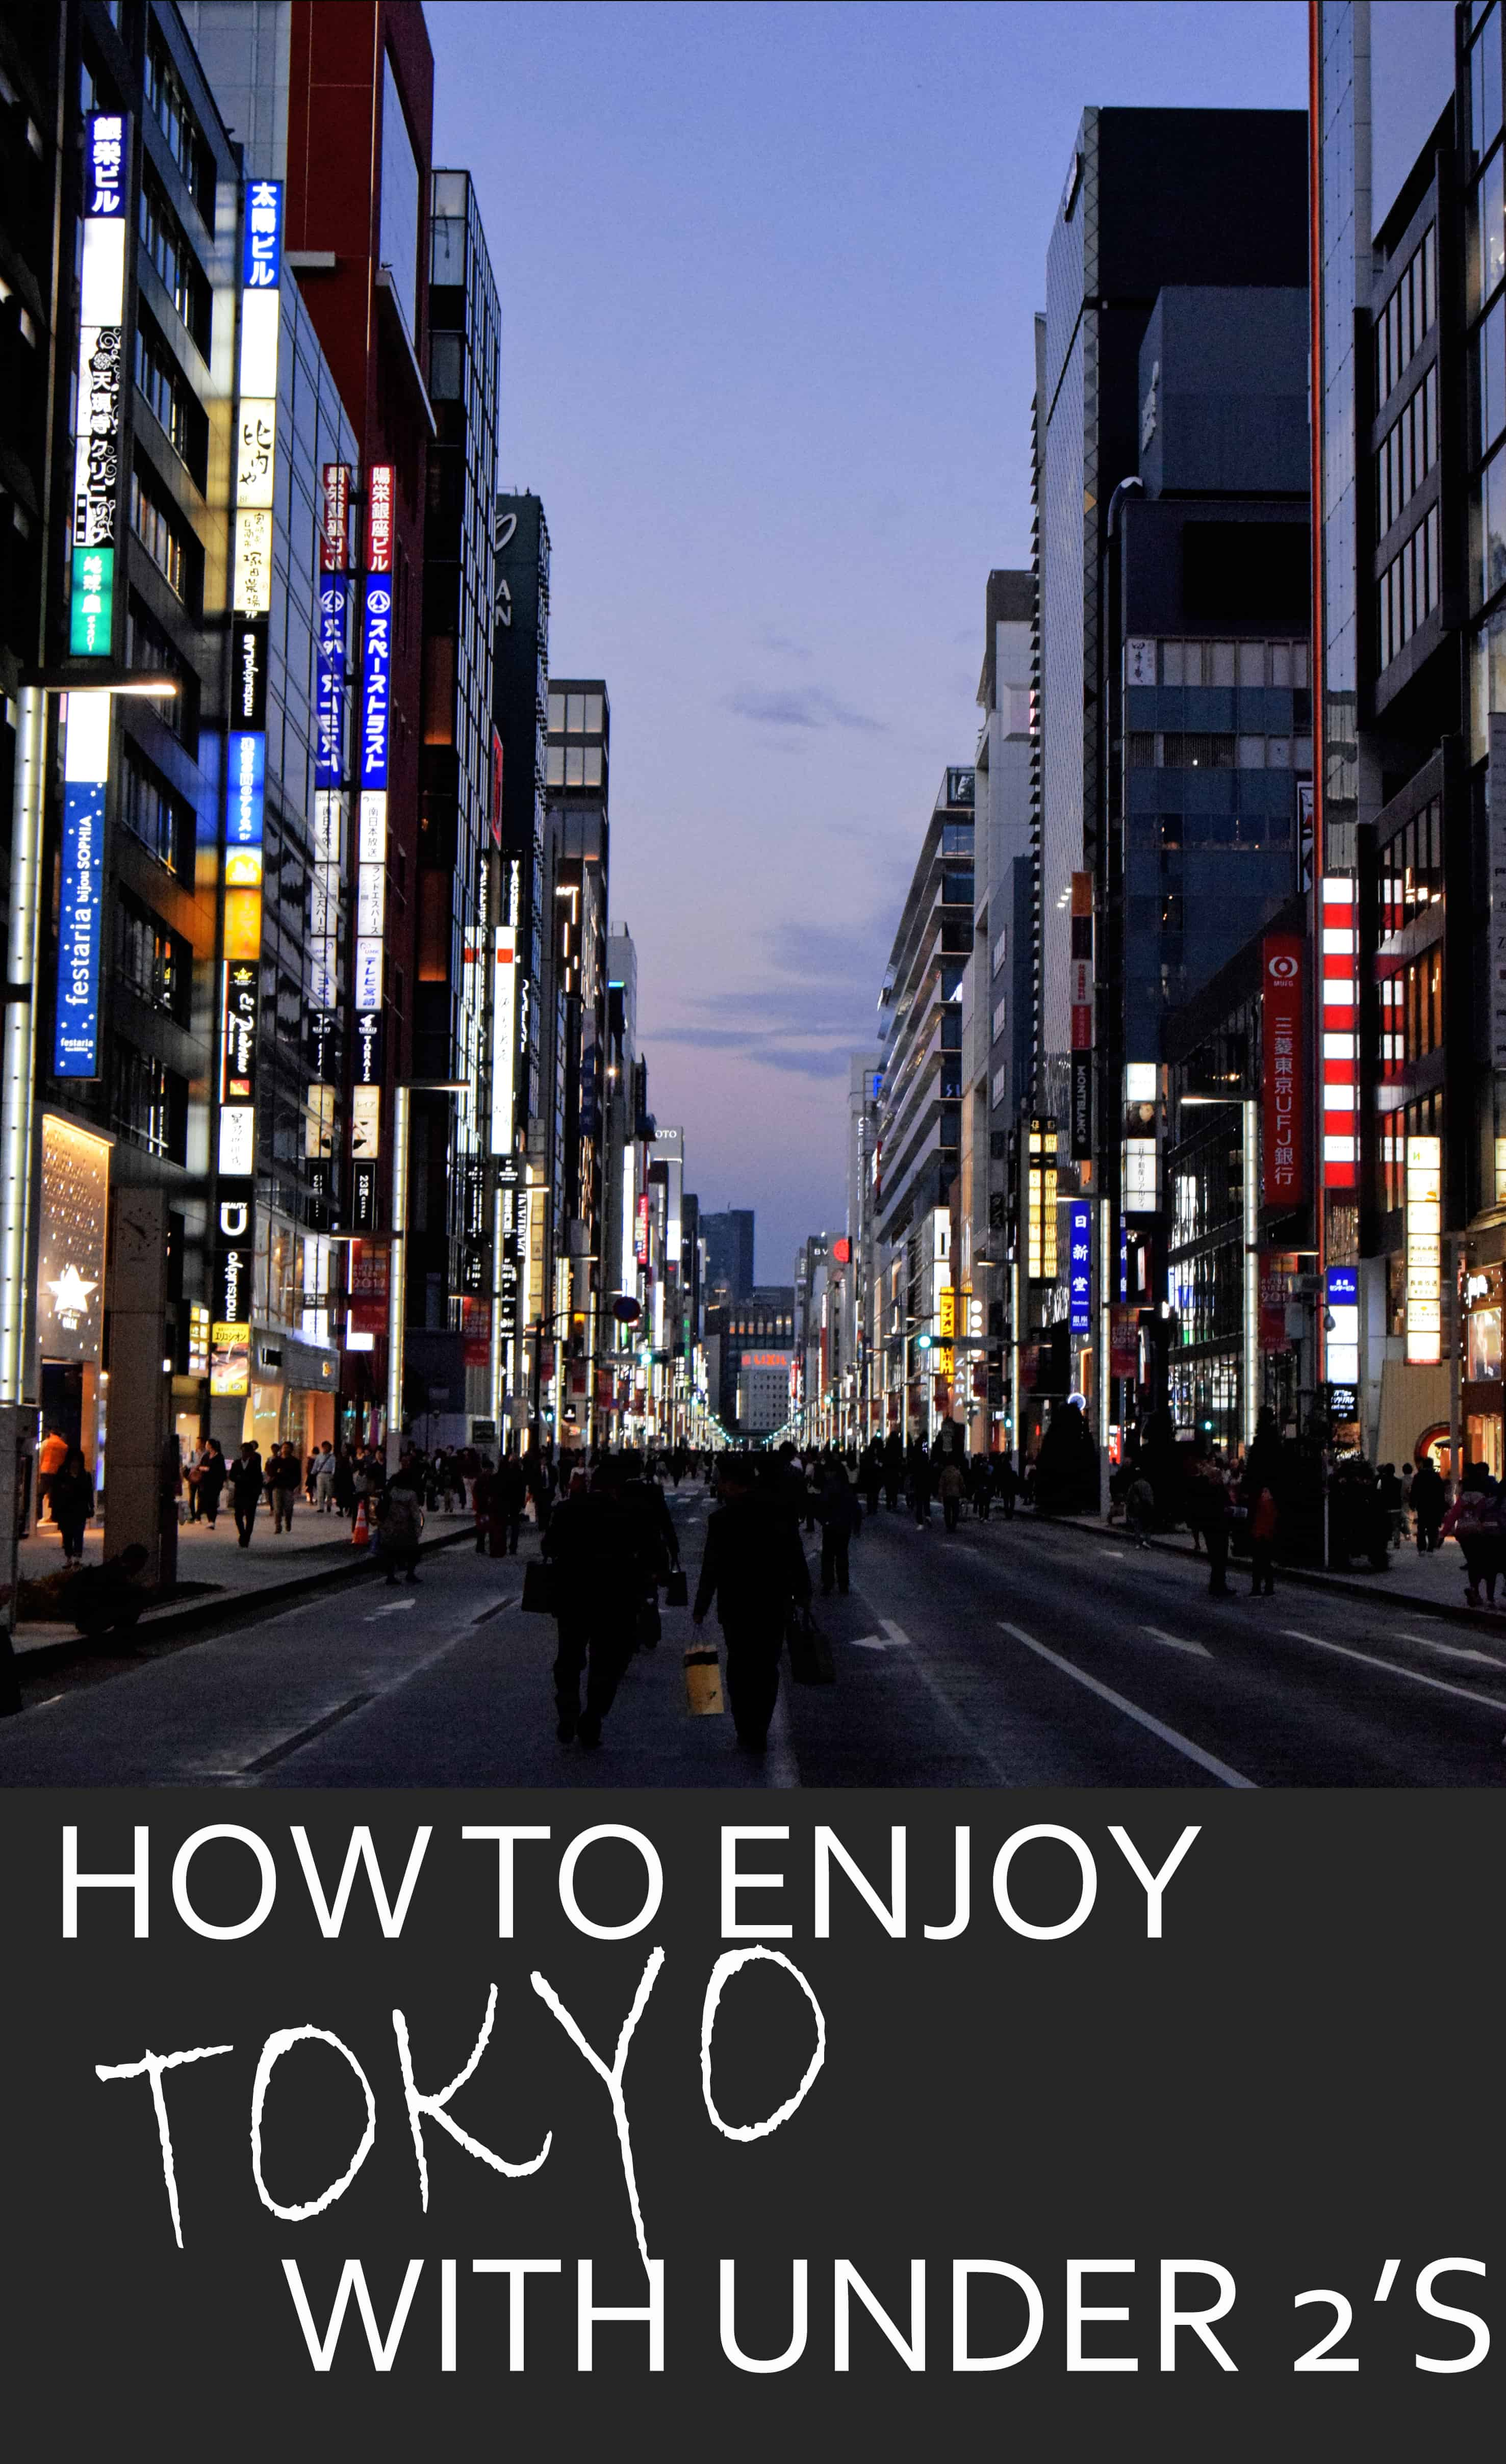 How to enjoy Tokyo with under 2's